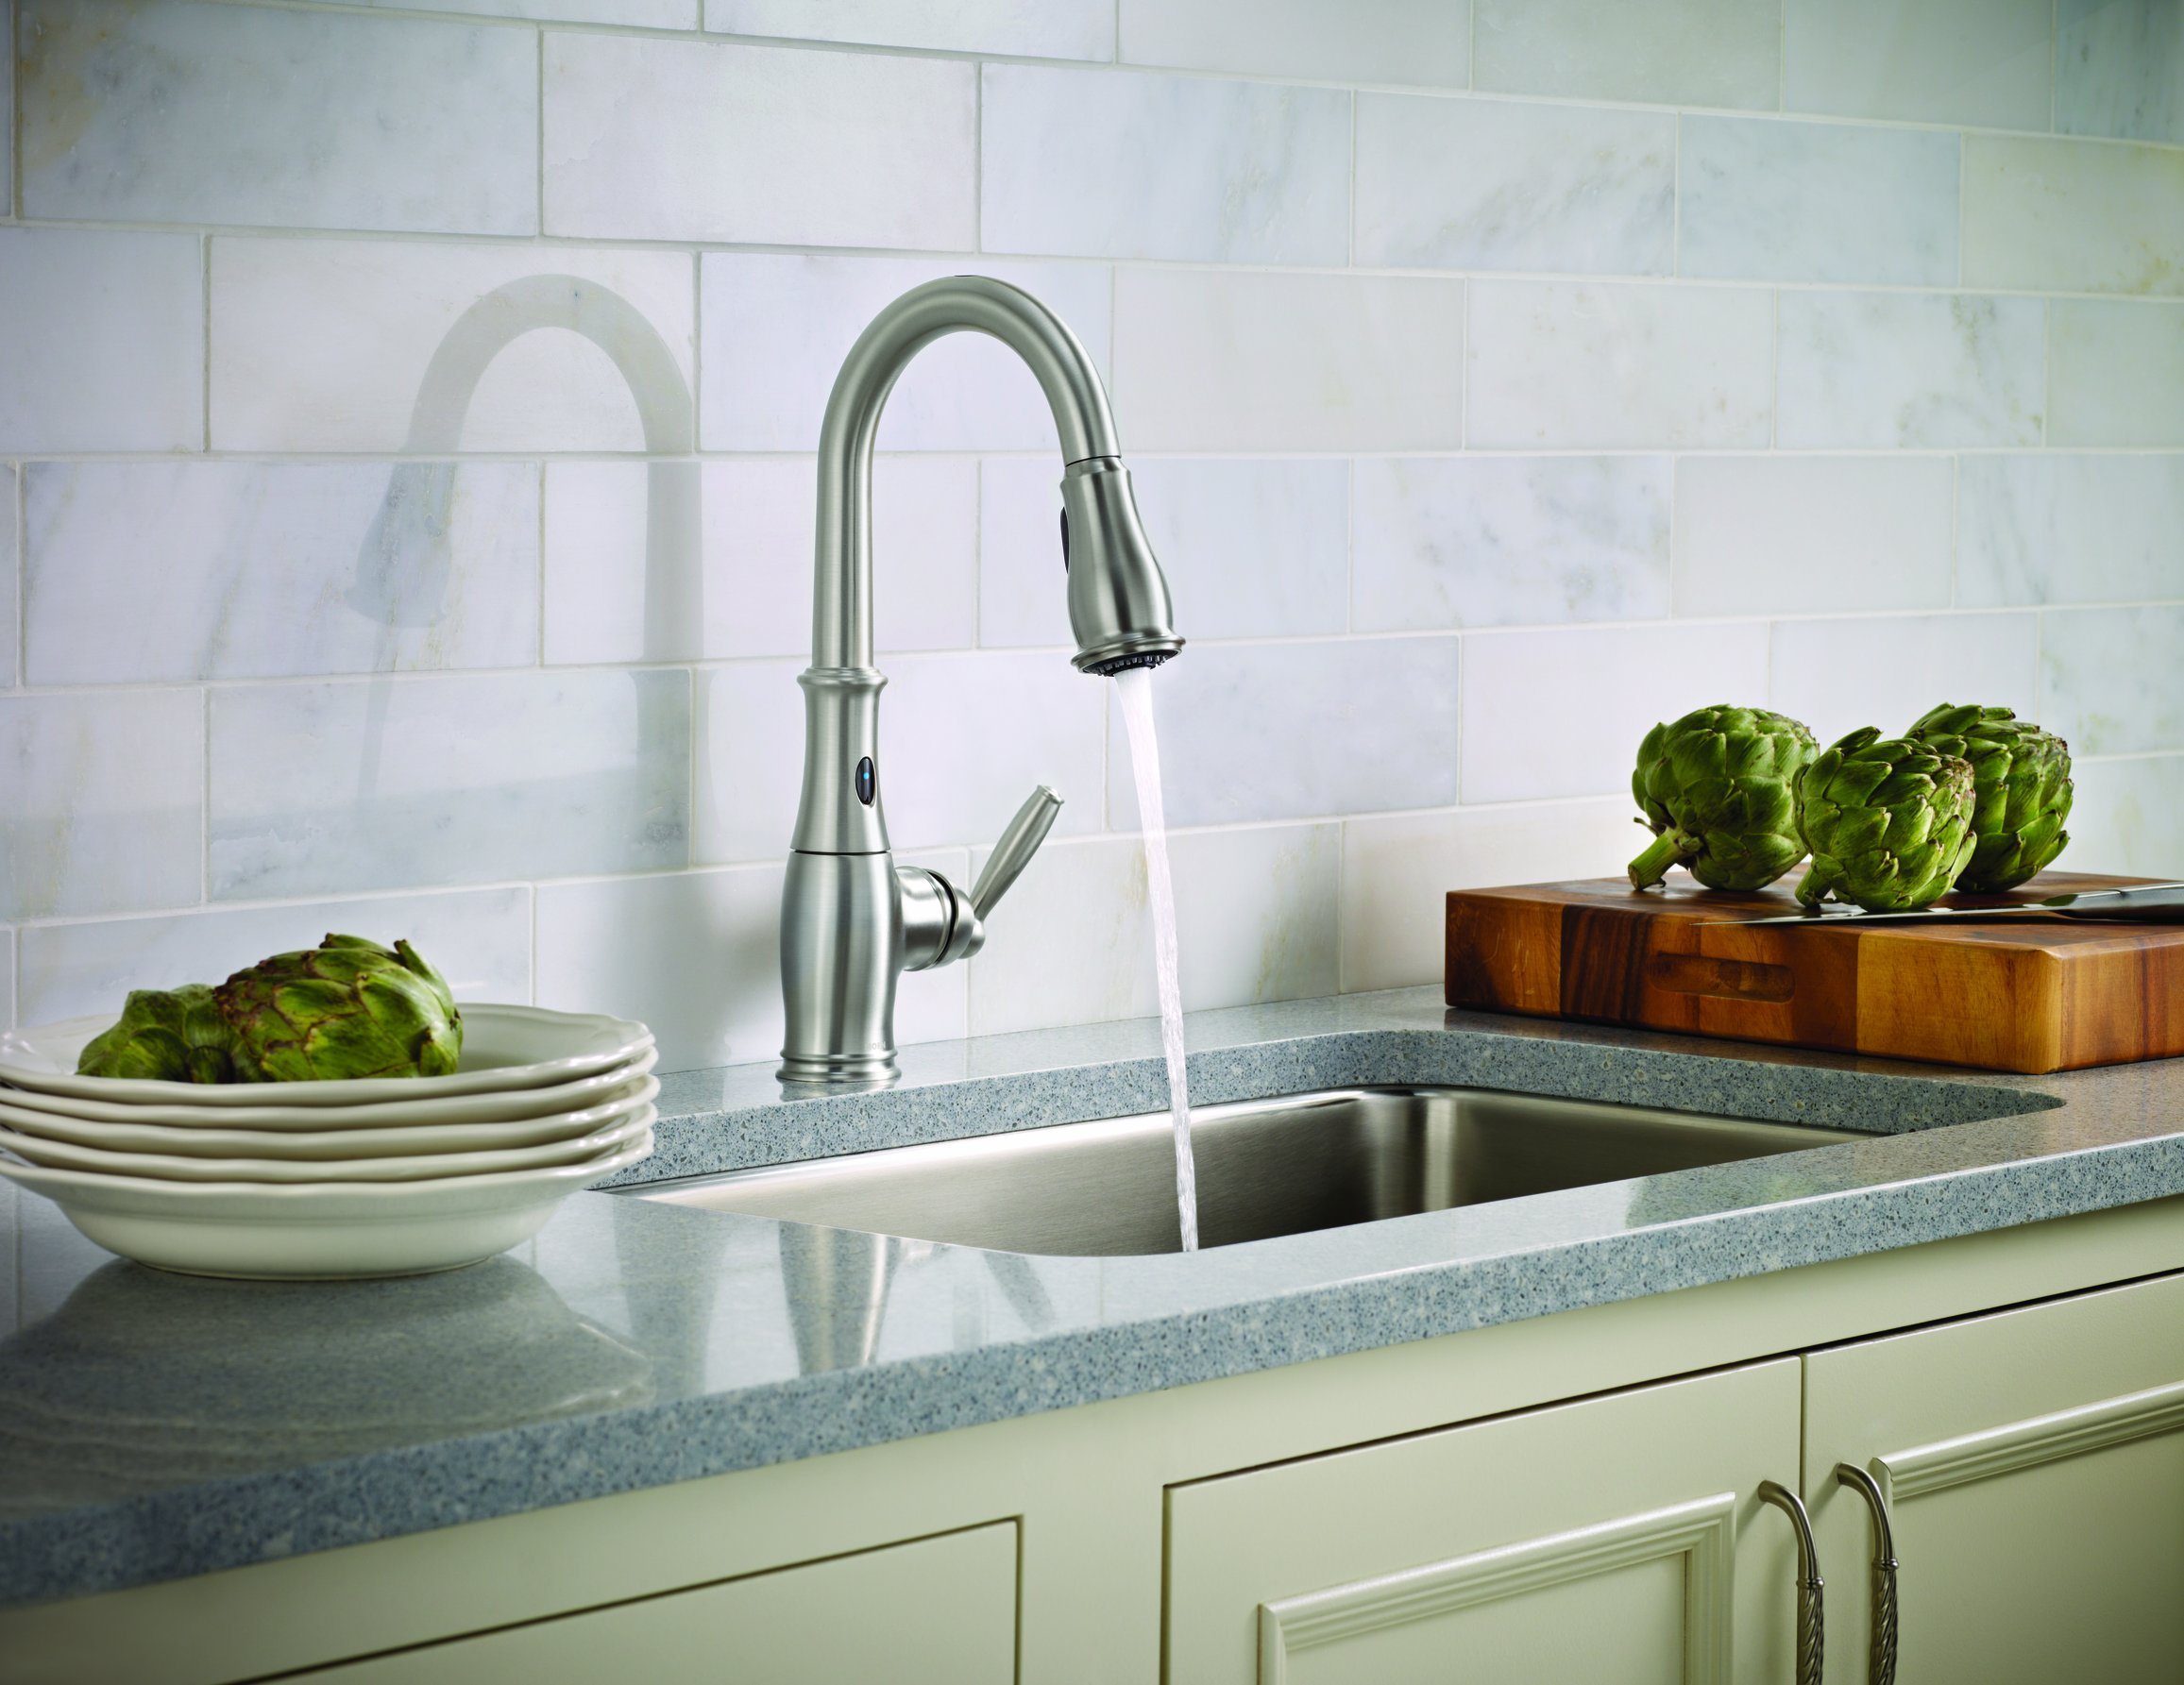 Moen 7185ESRS Brantford One-Handle High-Arc Pulldown Kitchen Faucet Featuring Reflex and MotionSense, Spot Resist Stainless by Moen (Image #5)